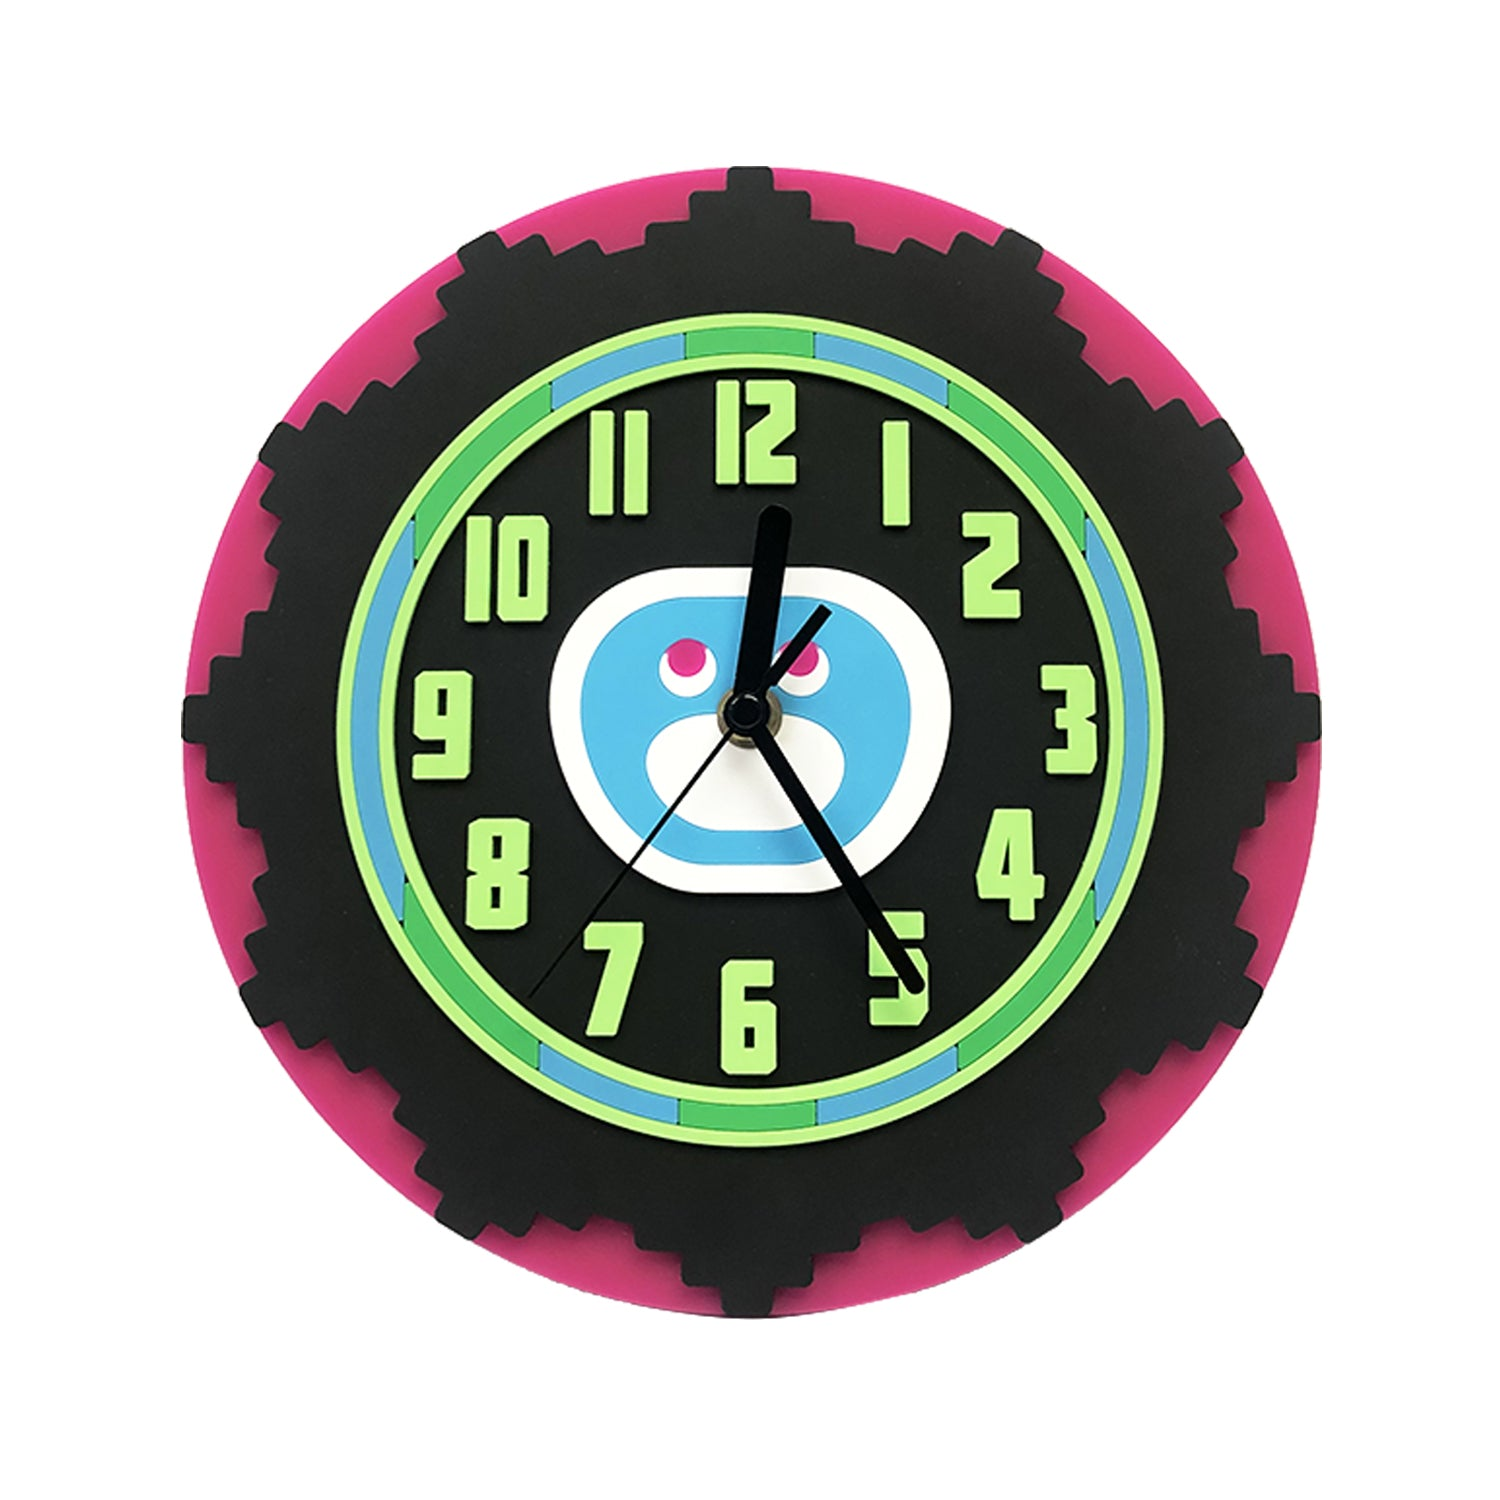 ICECREAM TIME CLOCK